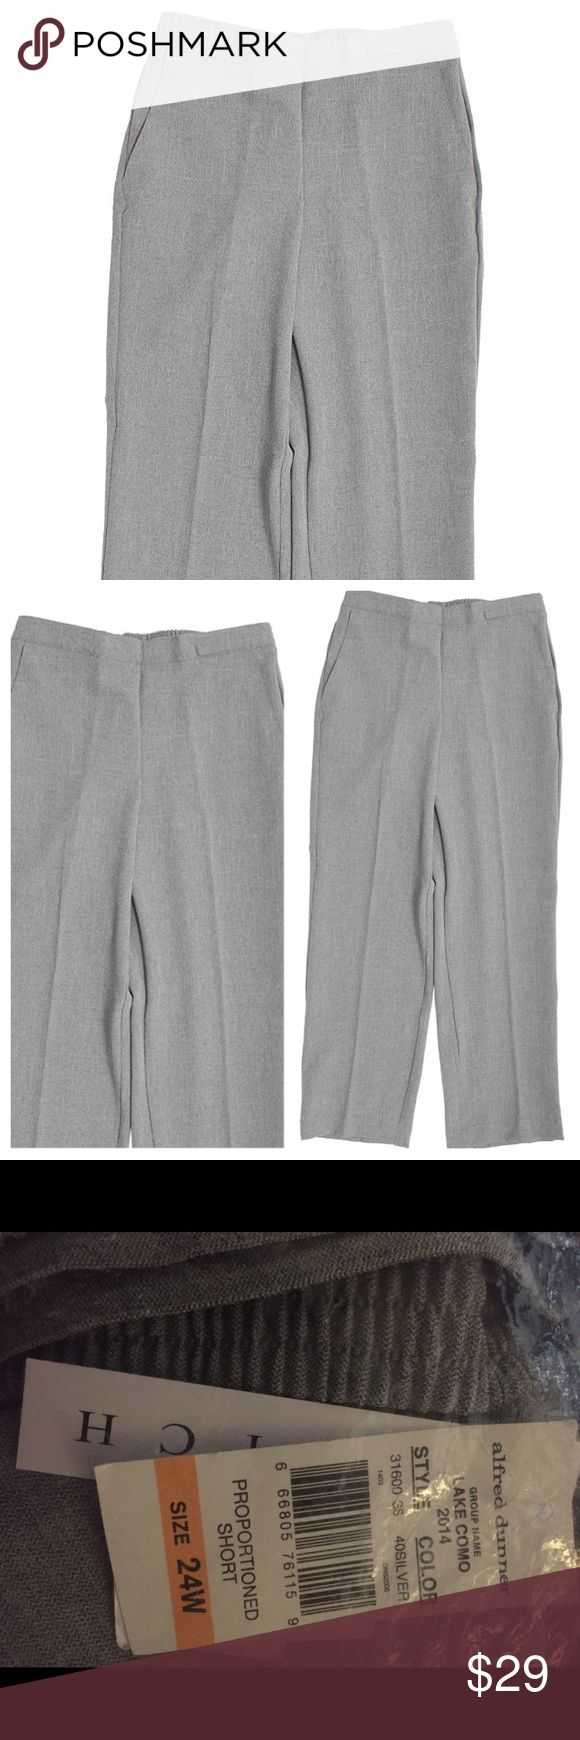 ALFRED DUNNER ELASTIC LAKE COMO SILVER PANTS 24W ALFRED DUNNER ELASTIC WAIST LAKE COMO SILVER PANTS SZ  24W.  These are Proportioned Short Length. Made of 96% Polyester/4% Spandex Elastic closure Not lined Flat front Elastic waist 052517–1 Alfred Dunner Pants